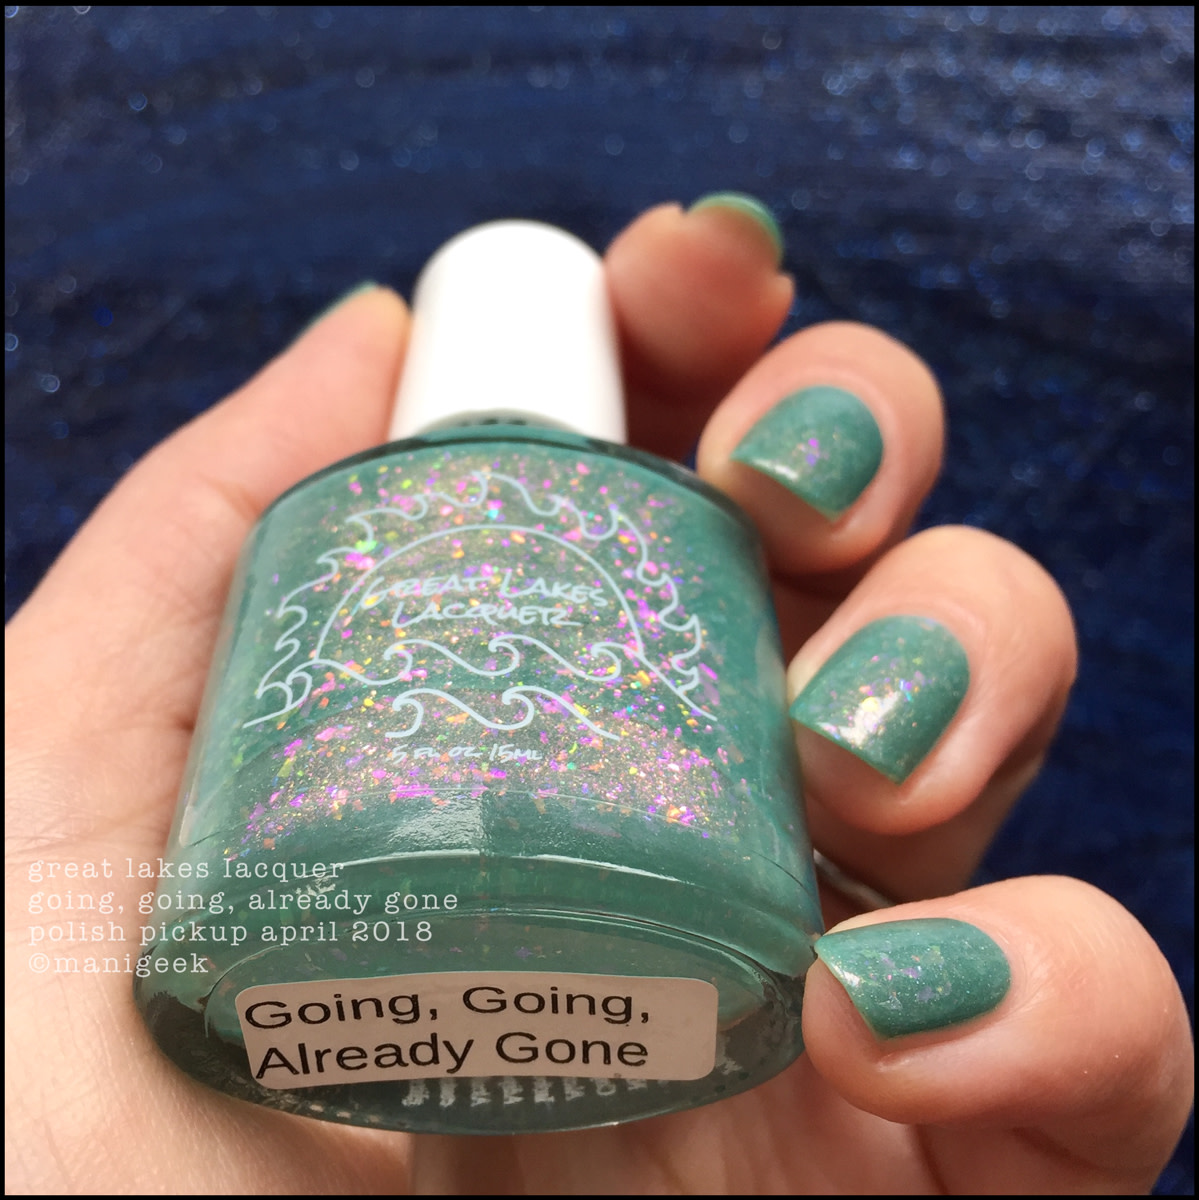 Great Lakes Lacquer Polish Pickup April 2018 Going Going Already Gone _ 4